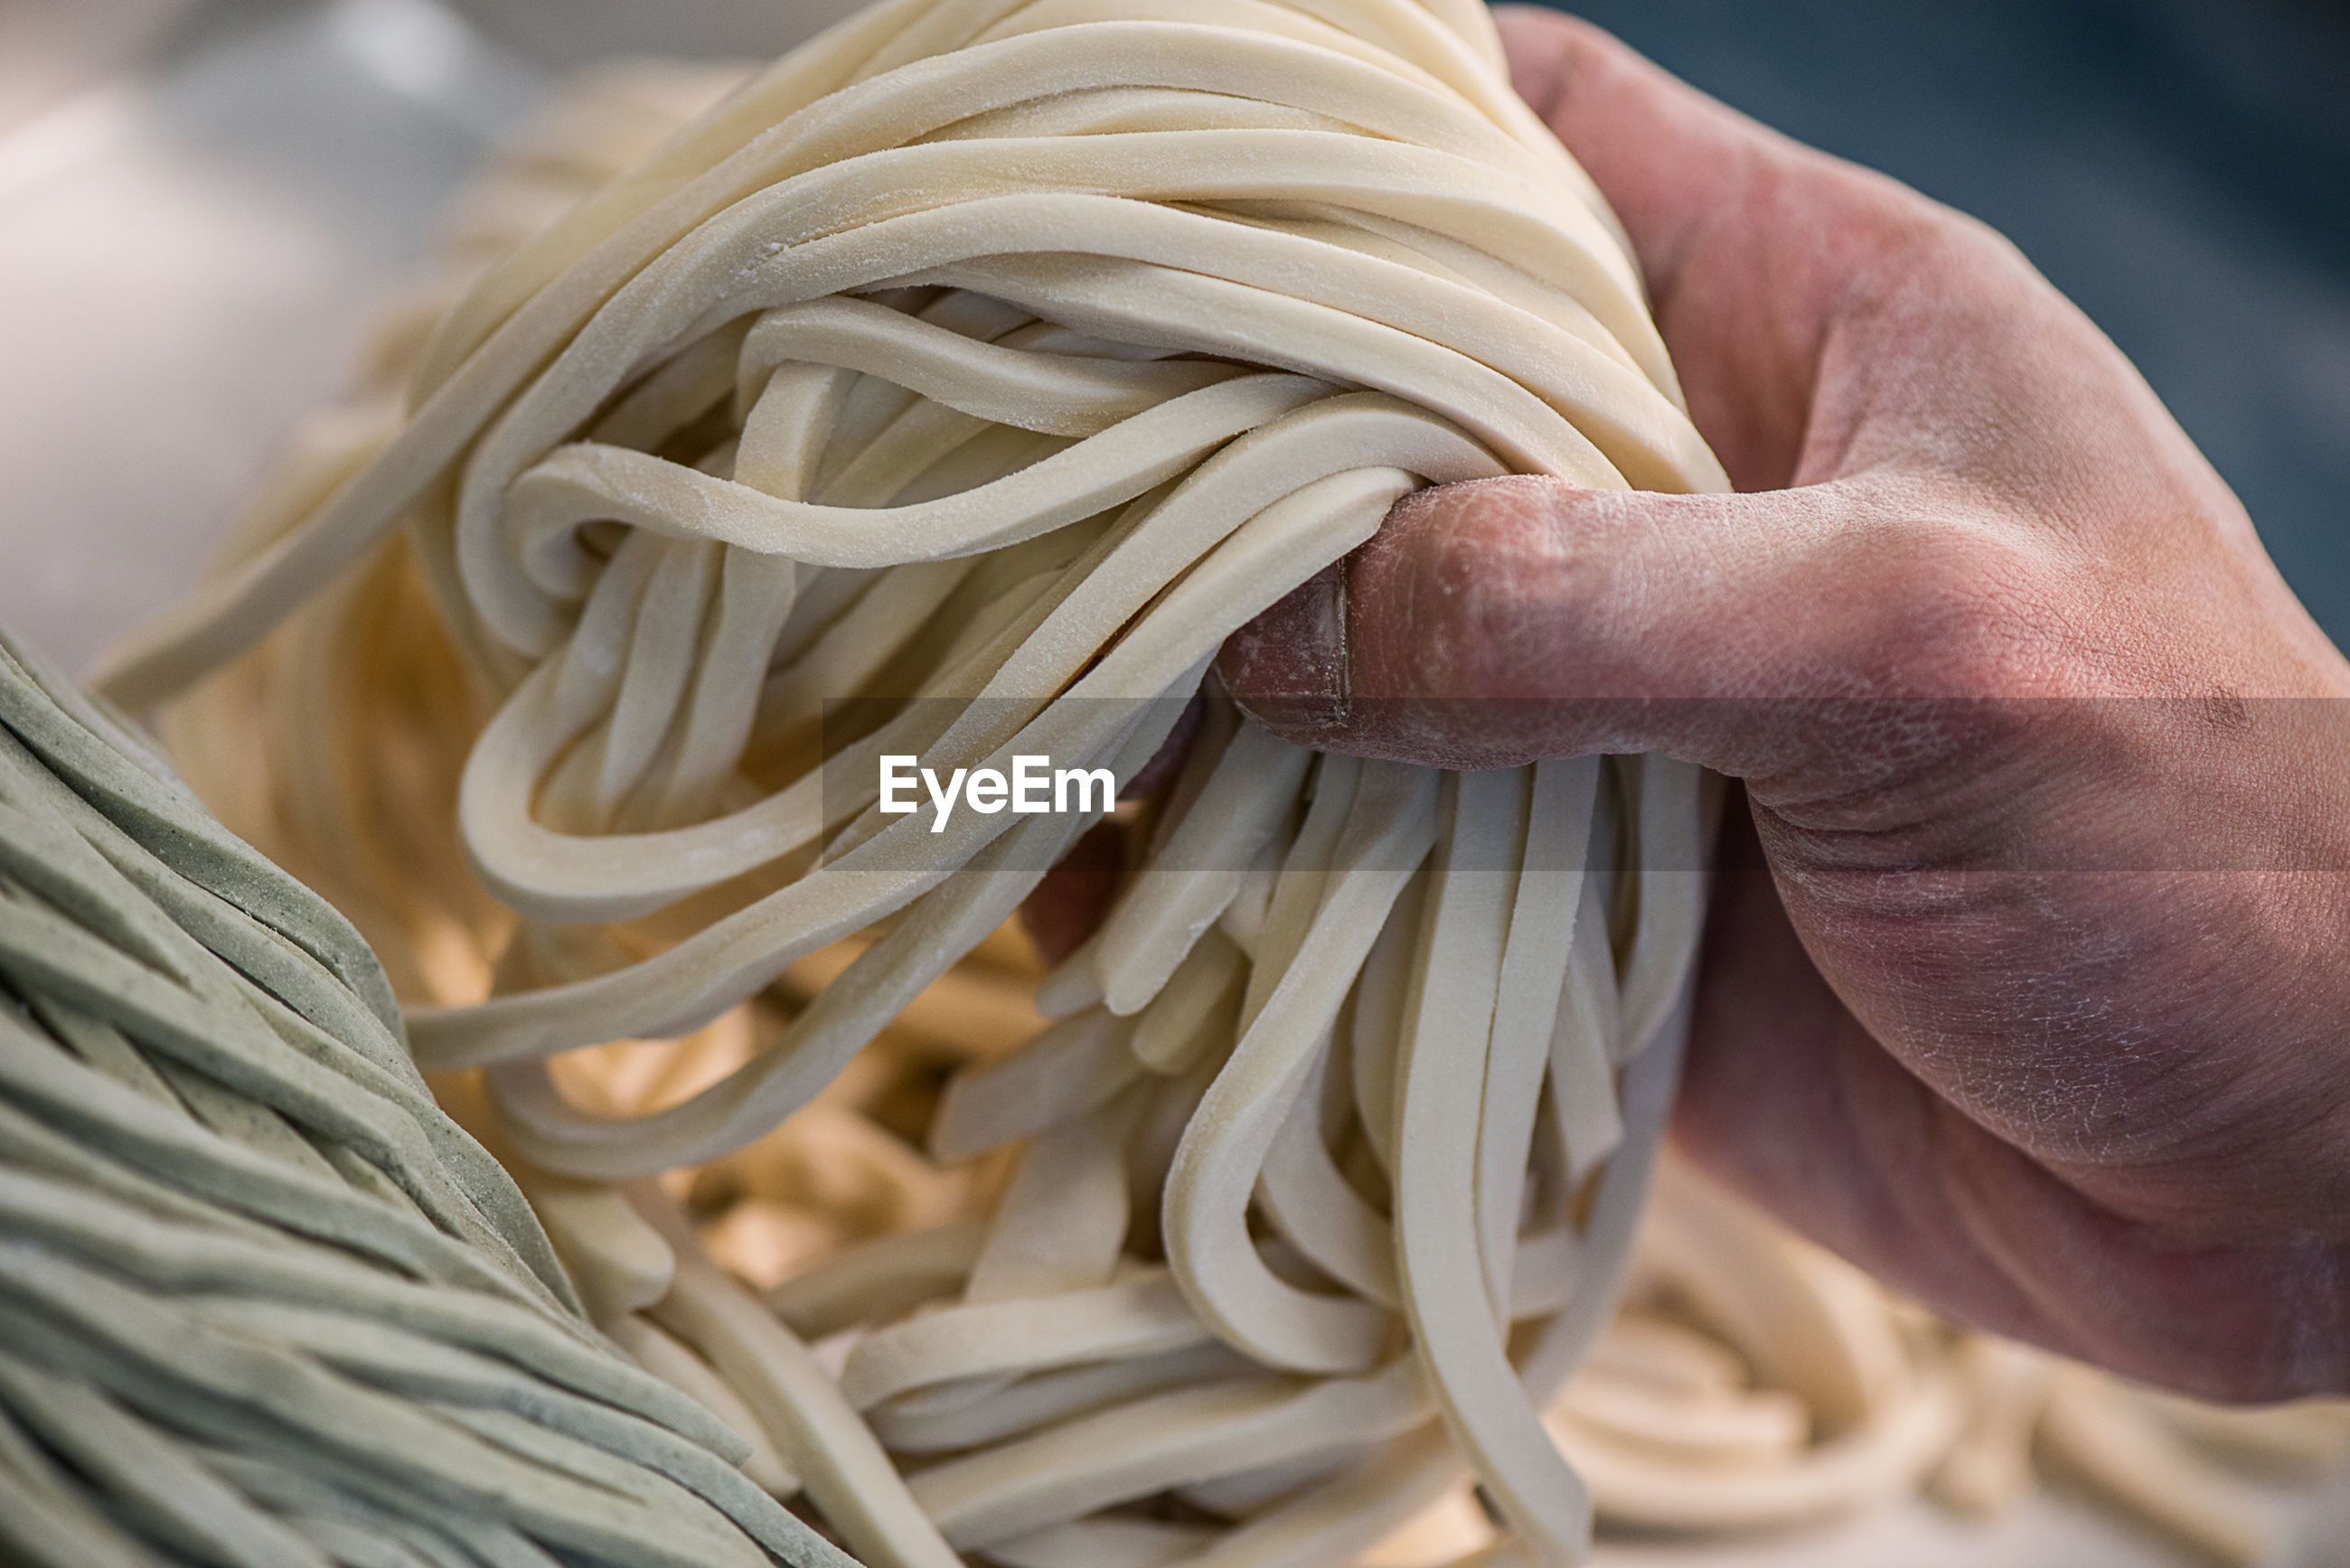 Close-up of hand holding homemade noodles